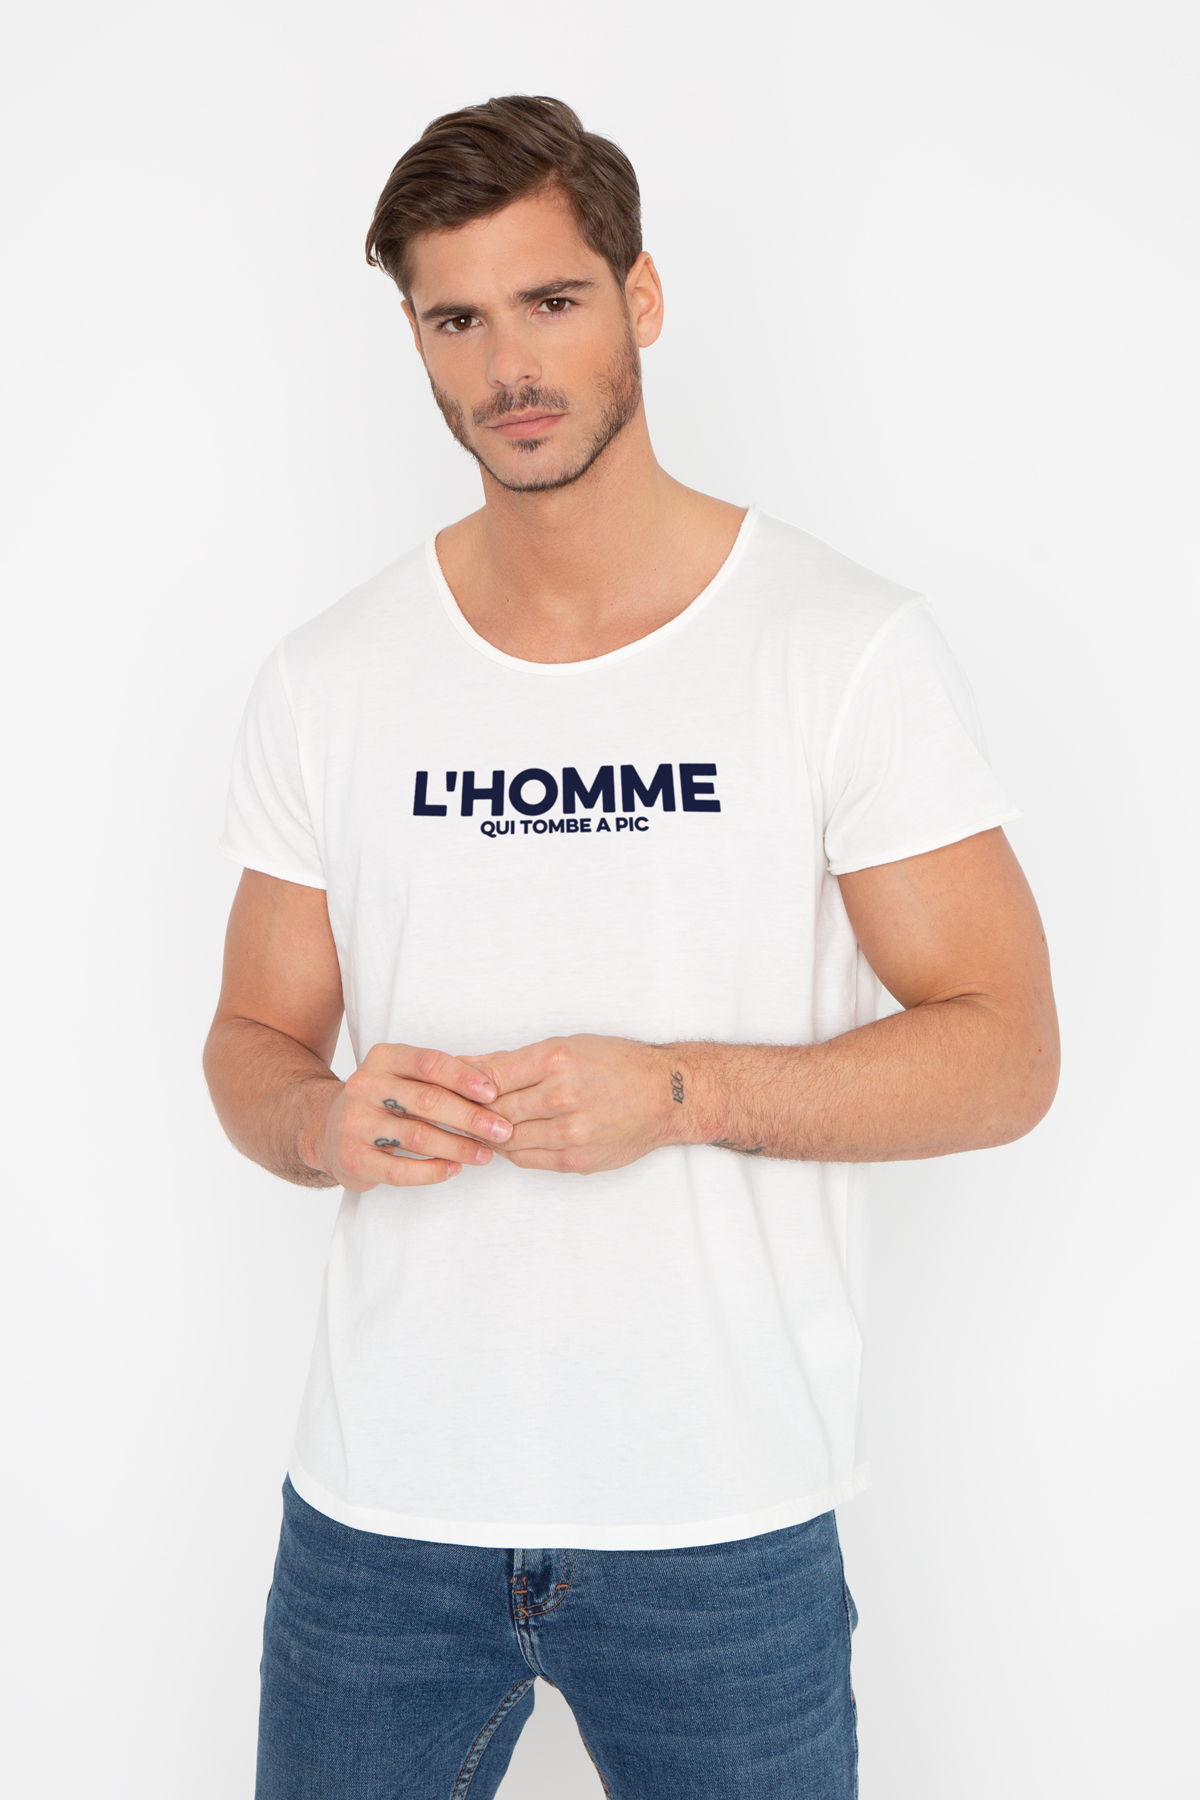 Photo de Soldes homme Tshirt Aron L'HOMME QUI TOMBE A PIC chez French Disorder